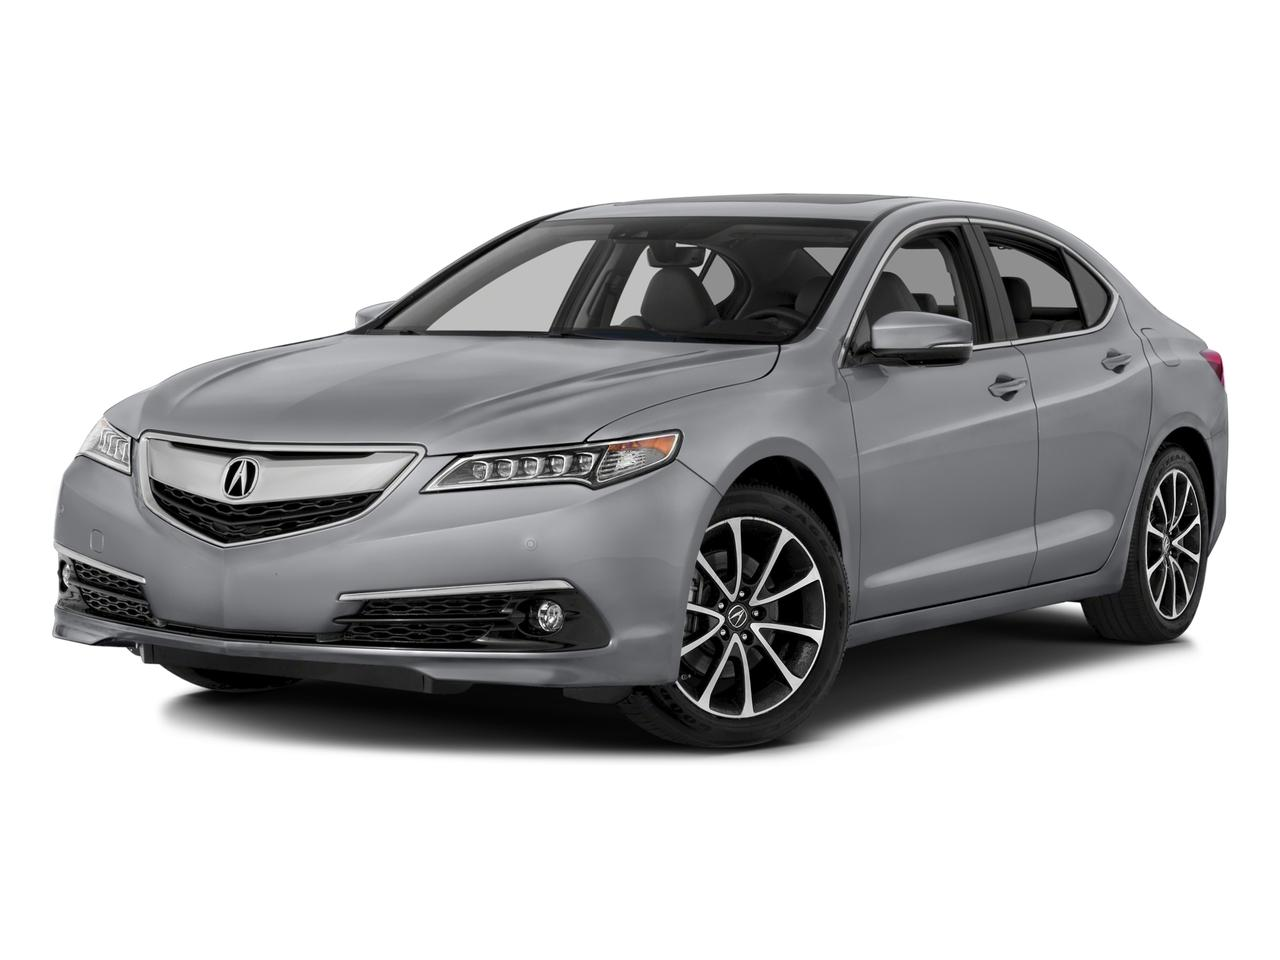 2016 Acura TLX Vehicle Photo in Colorado Springs, CO 80920